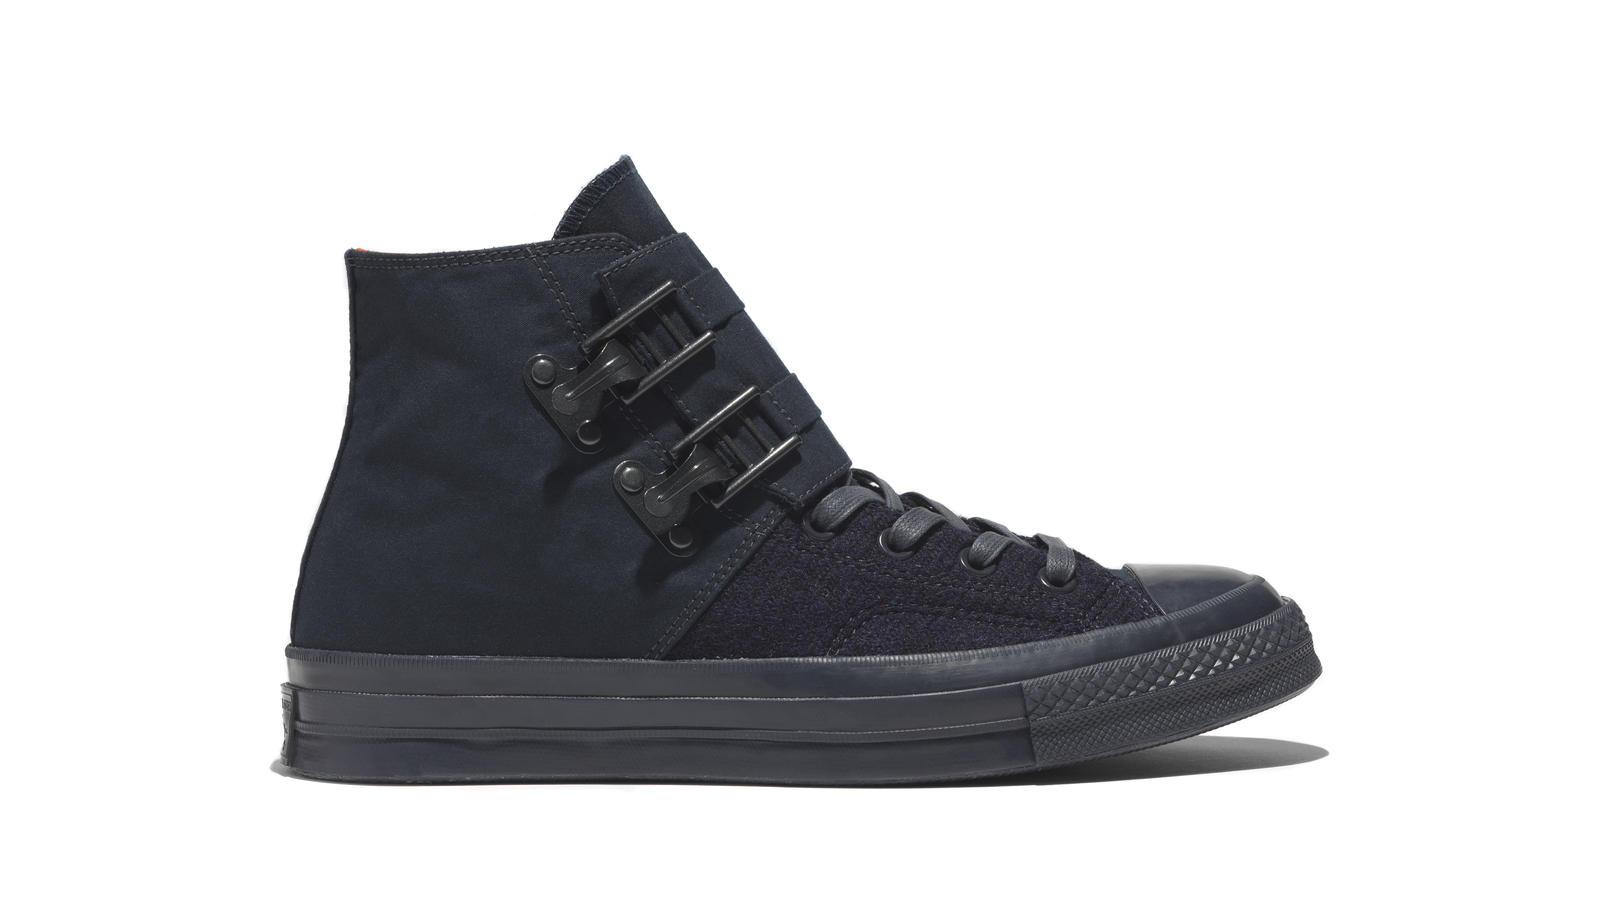 Fh16 Fs Ctas70 Nigel Cabourn Blue Lateral 153332 C